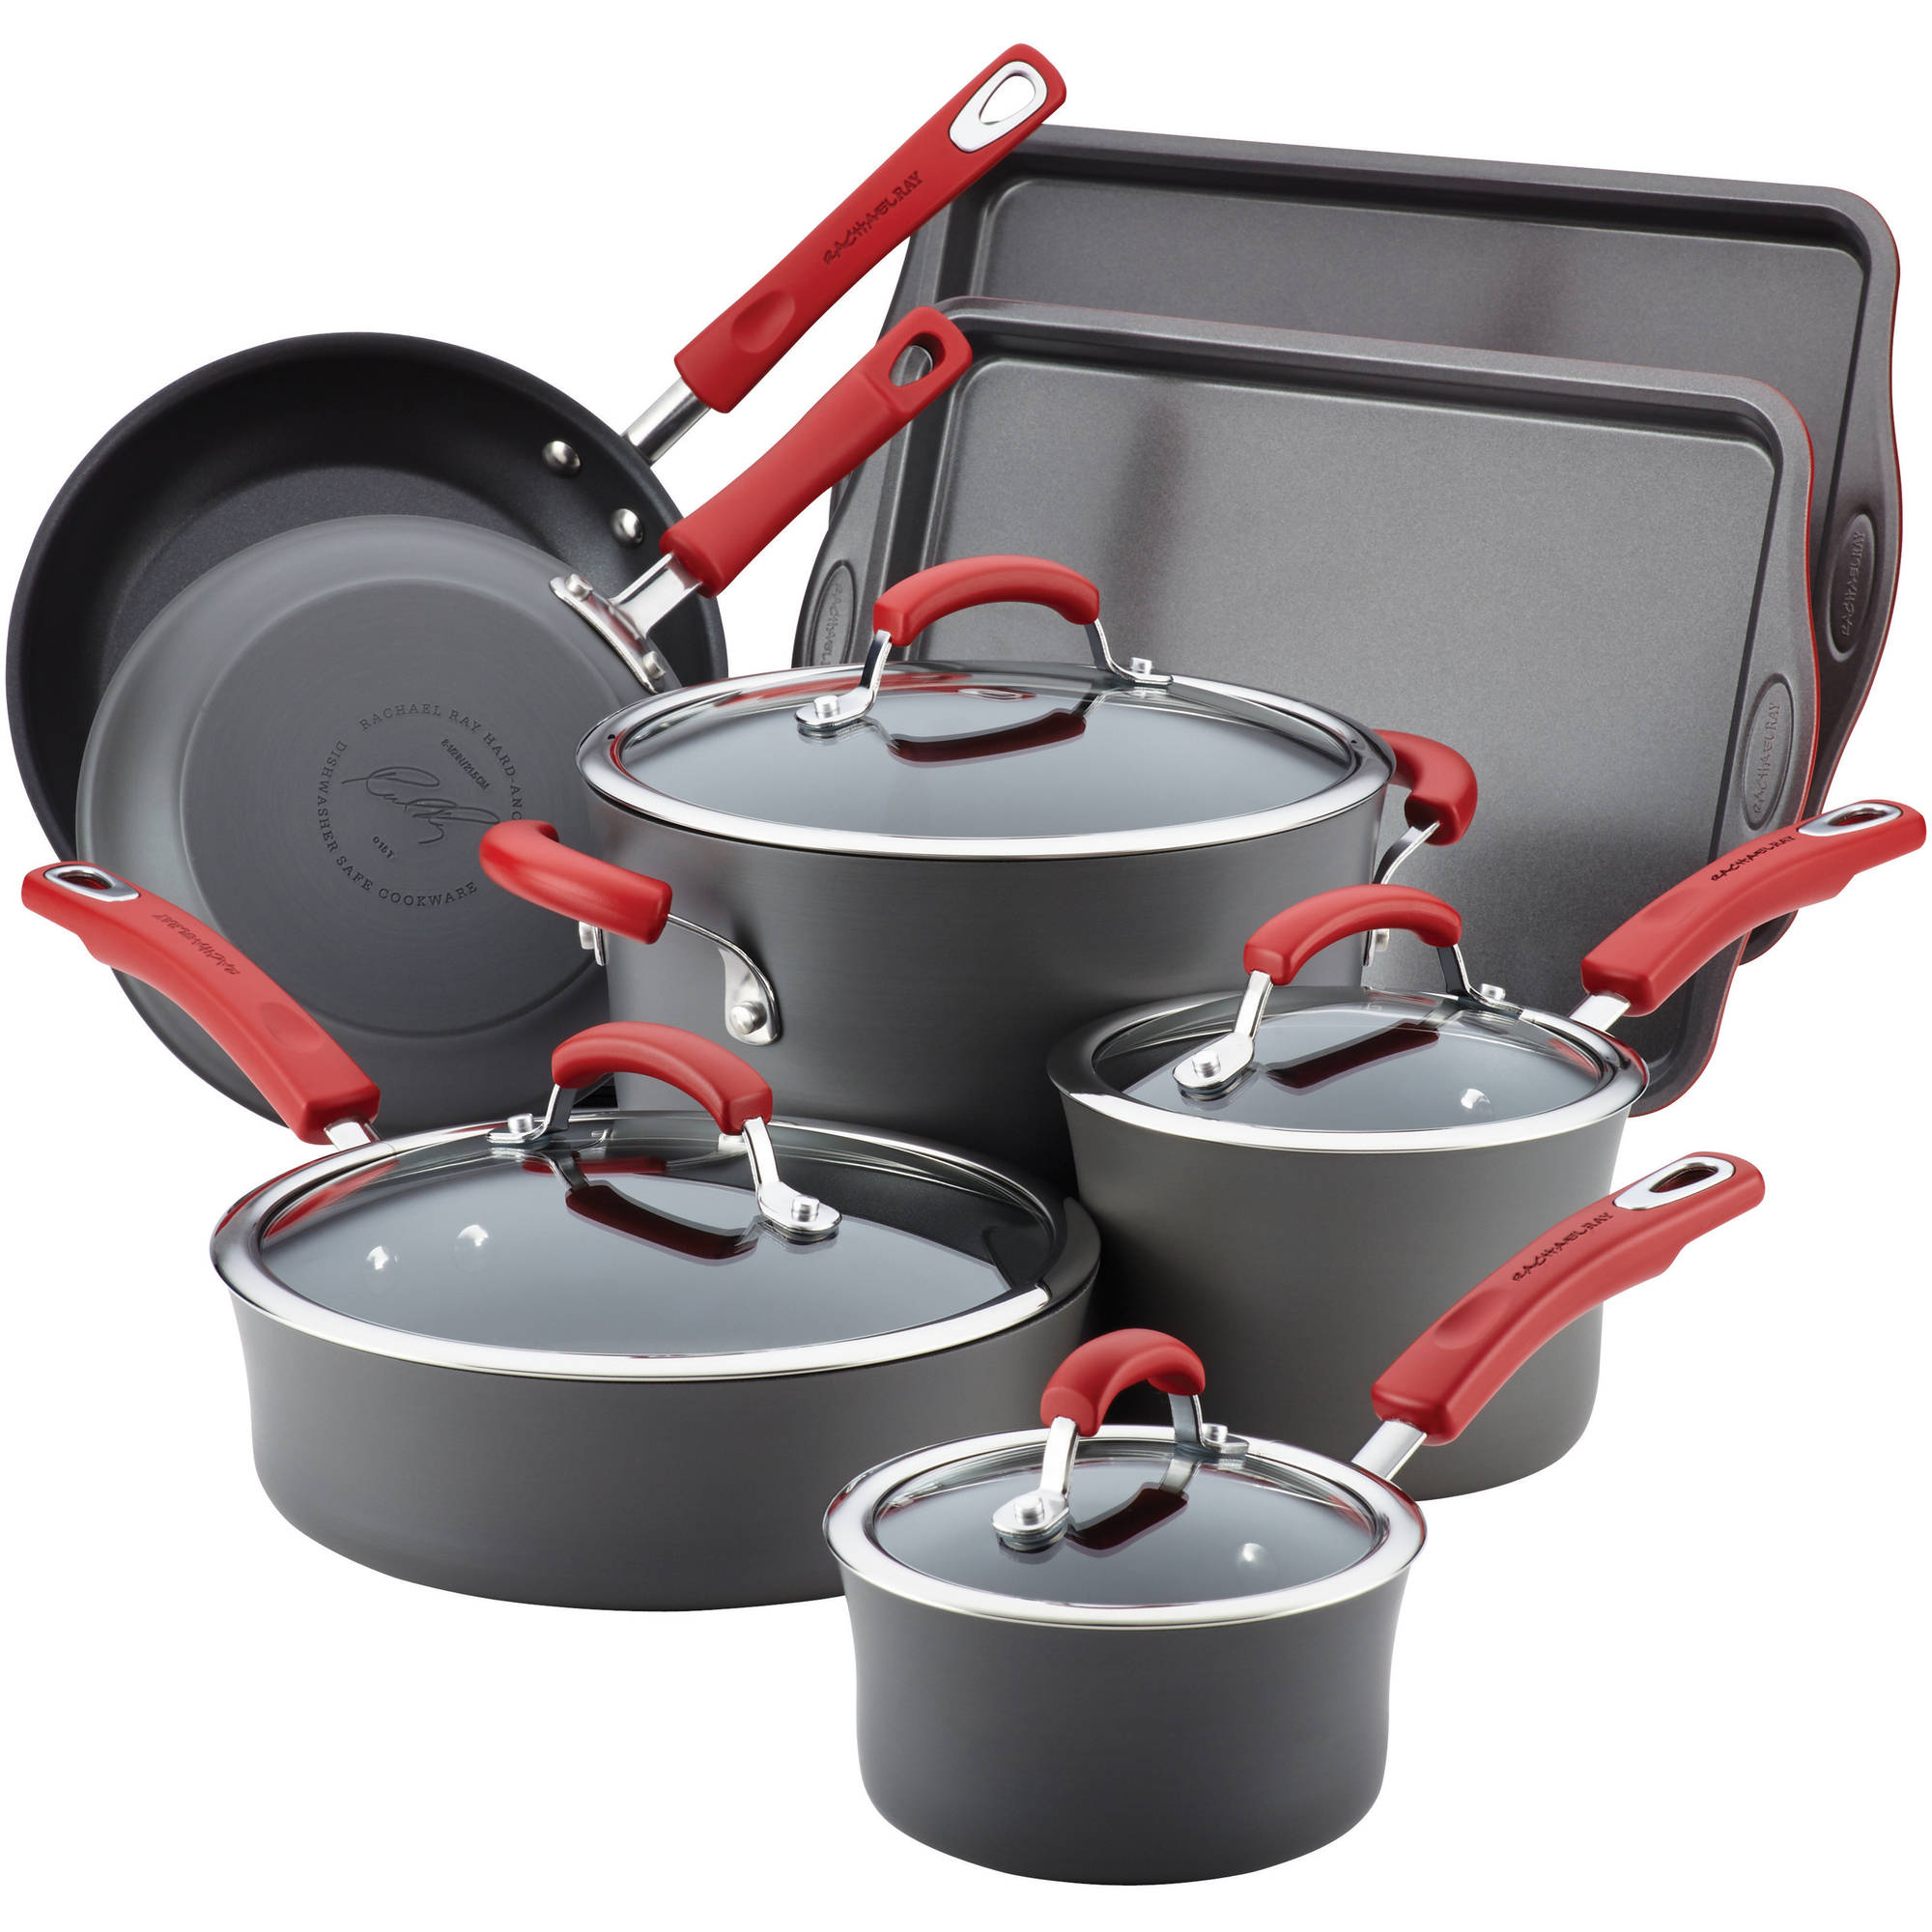 rachael ray hard anodized 12 piece rachael ray hardanodized nonstick 12piece cookware set grey with red handles